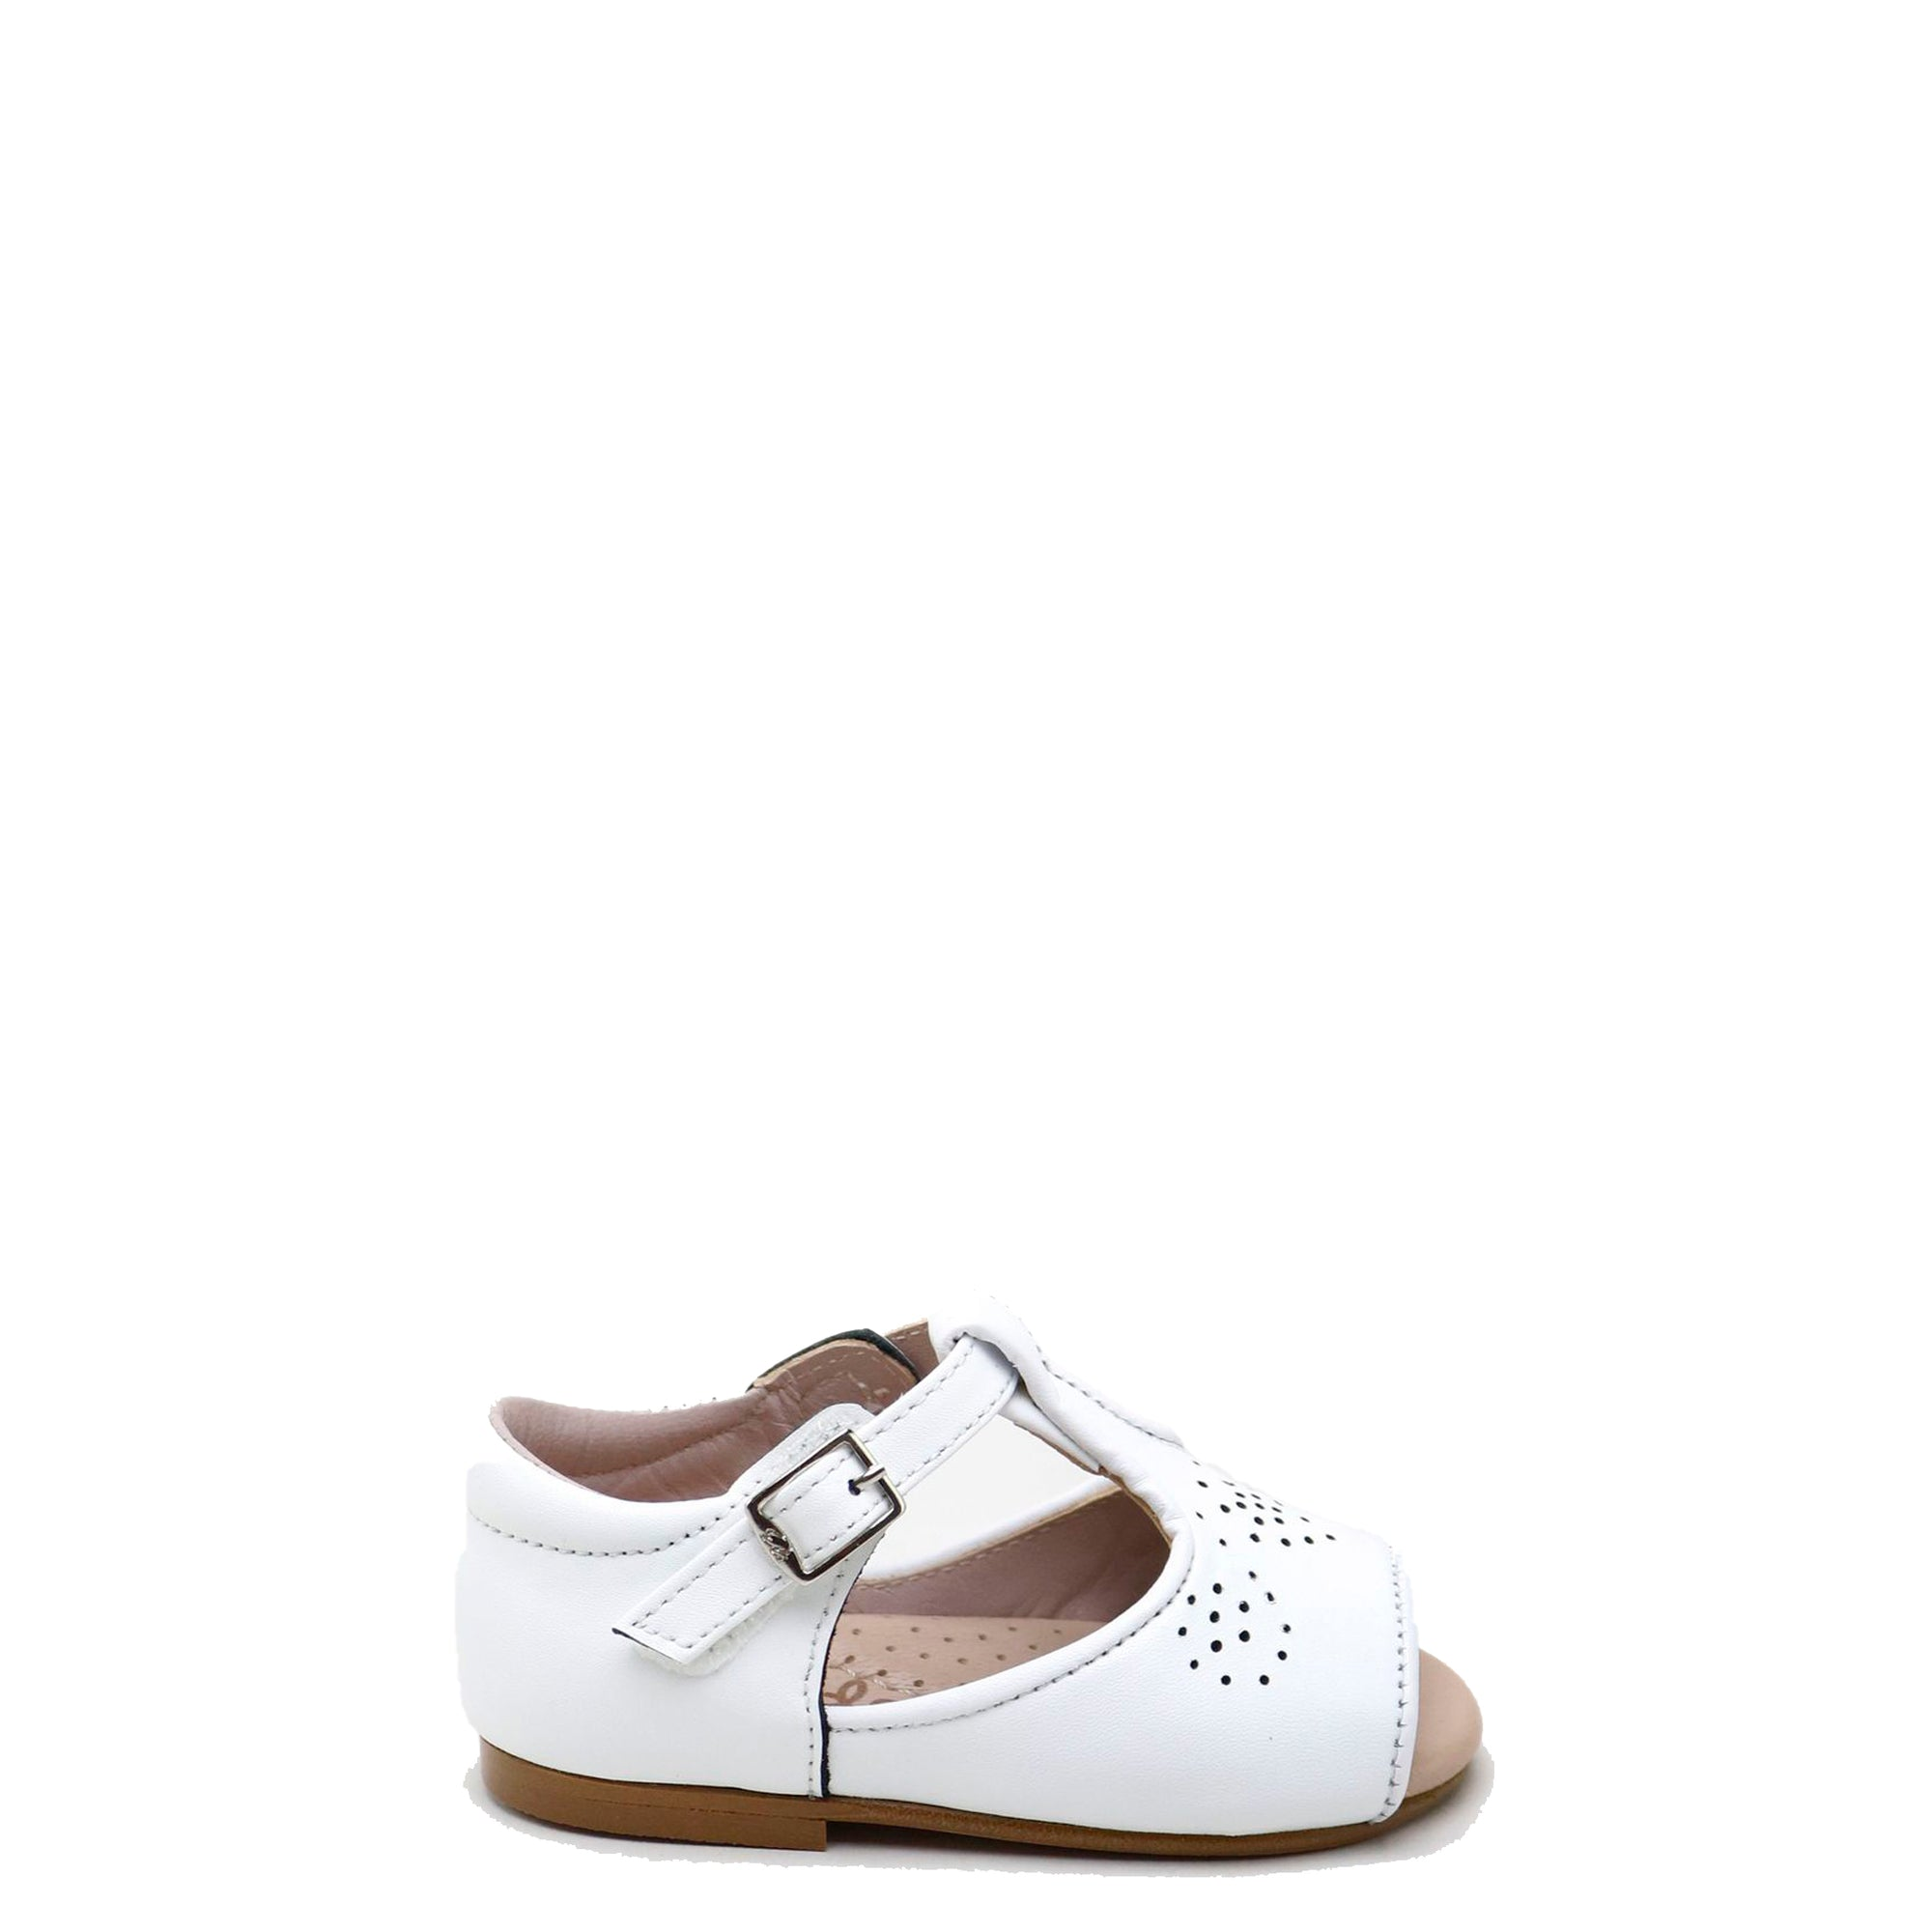 Papanatas White Perforated T-Strap Sandal-Tassel Children Shoes